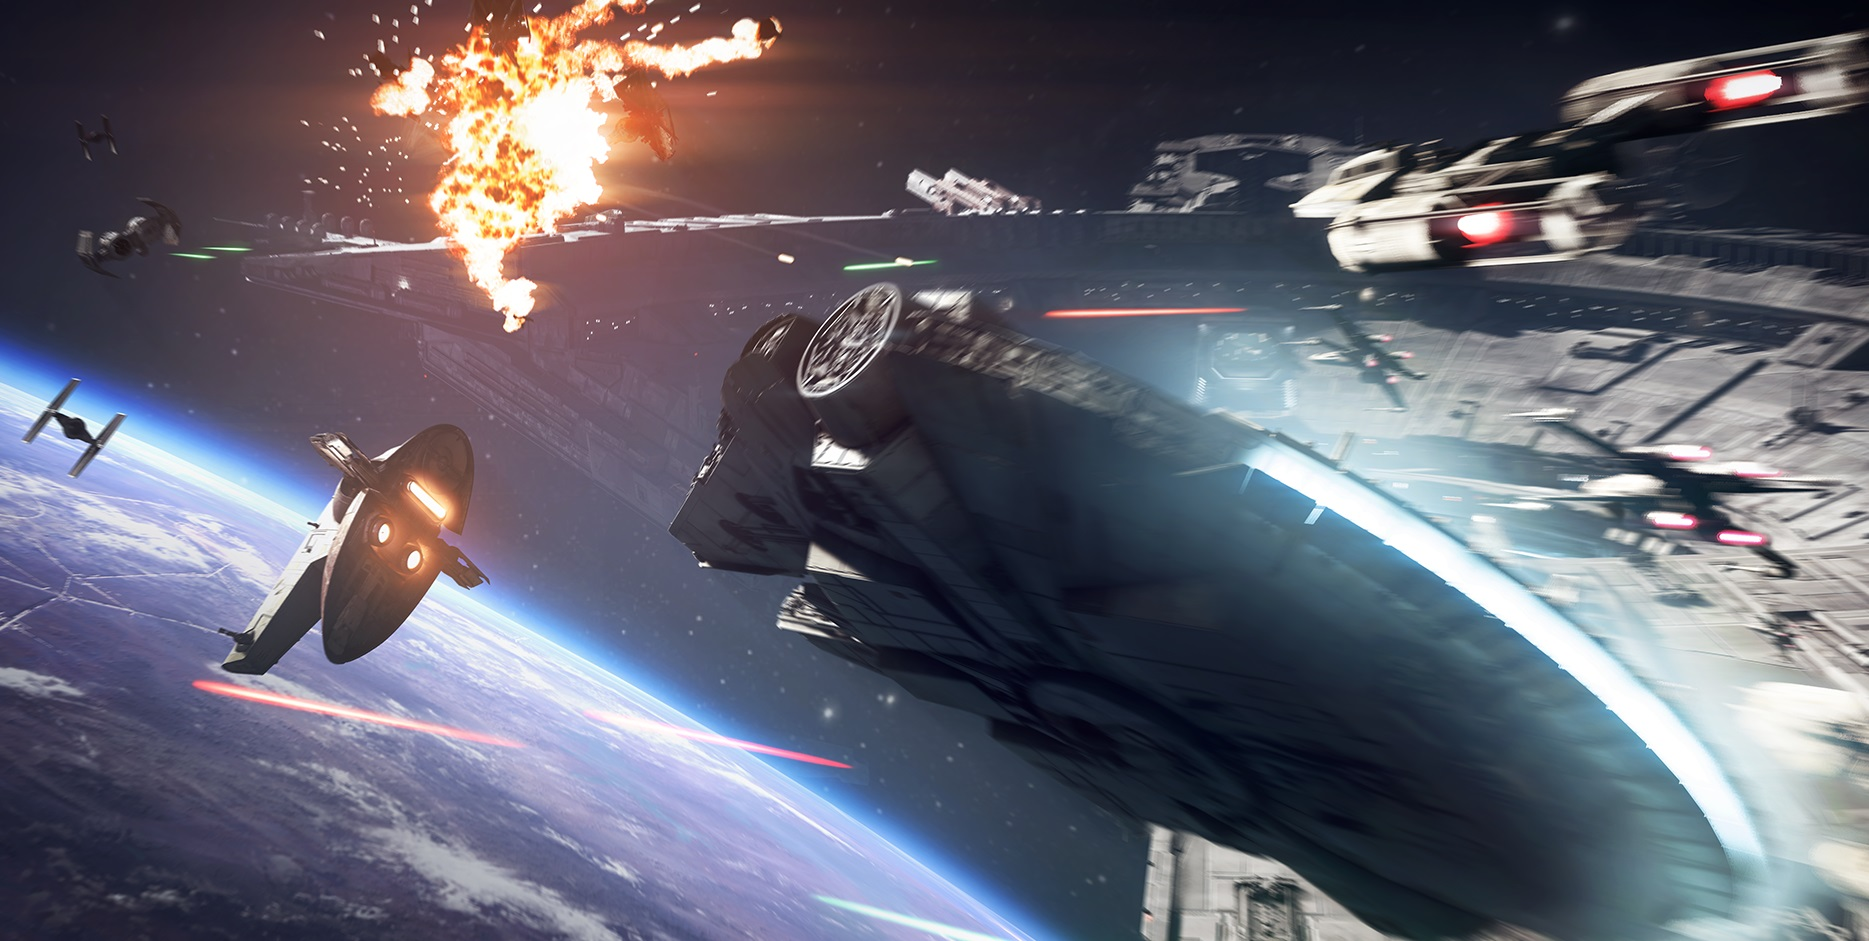 You Can Play 'Star Wars Battlefront II' for Free Right Now